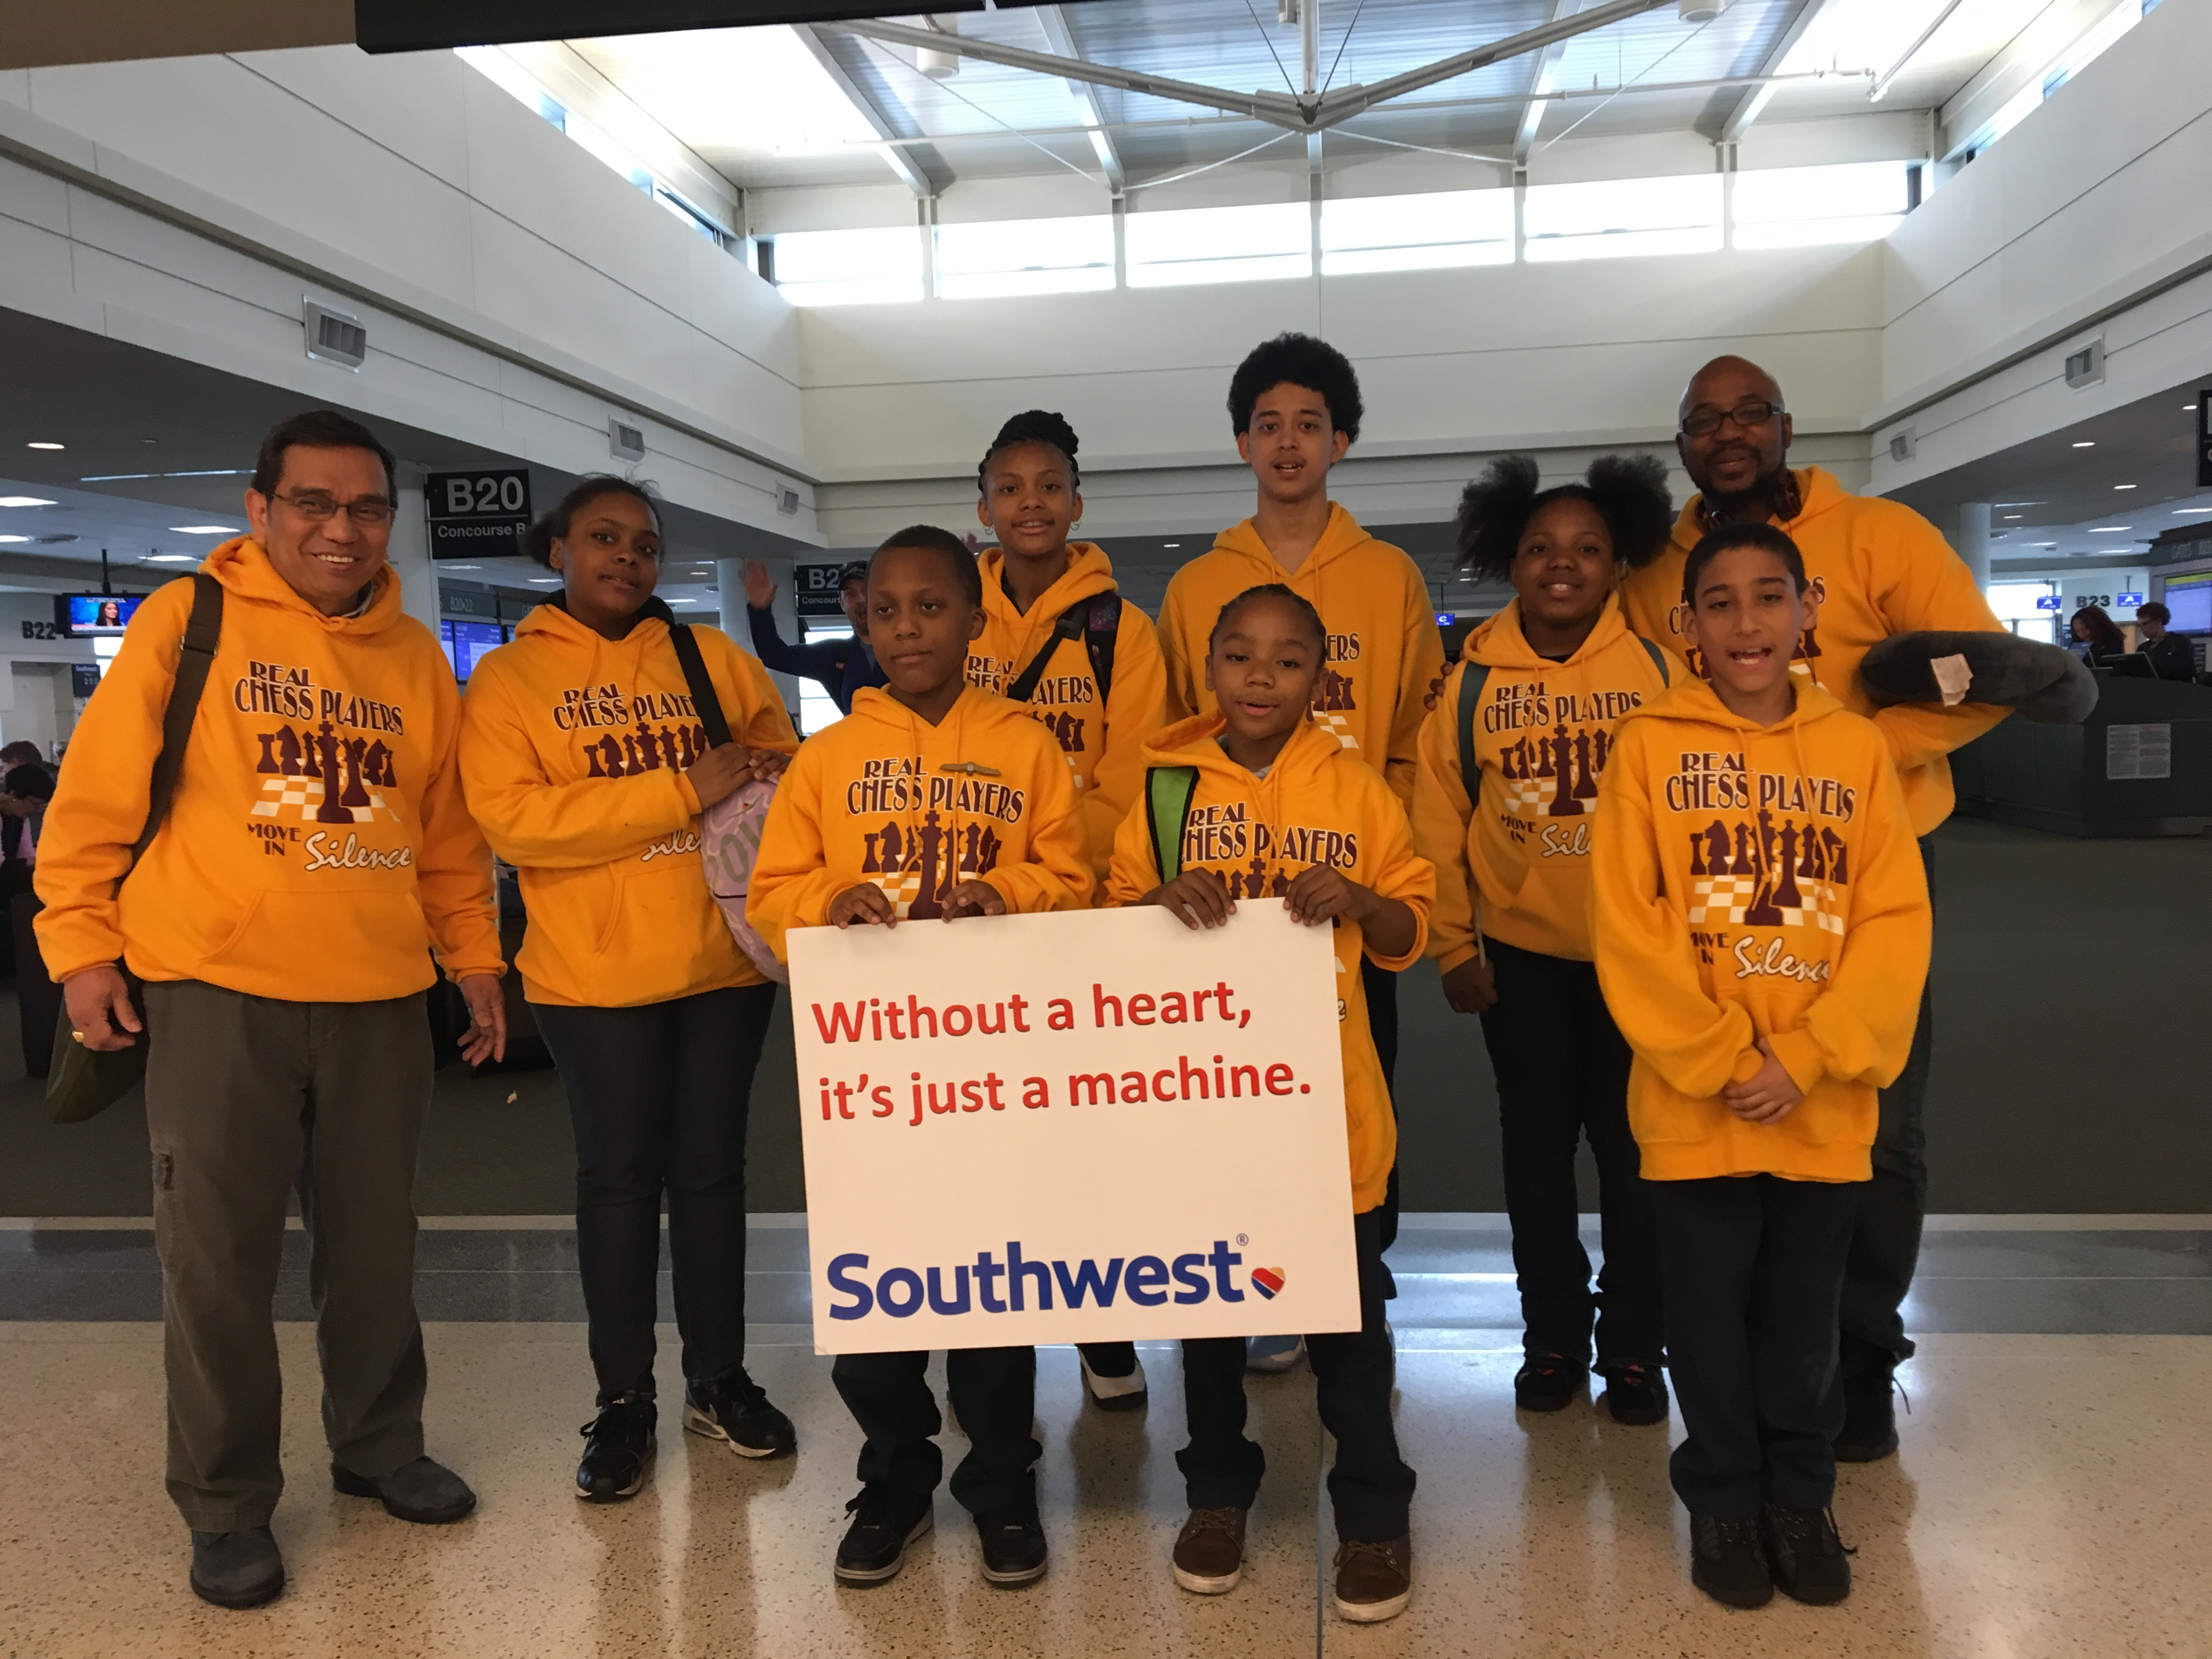 WEST ENGLEWOOD - Members of Earle STEM Academy's chess team took home three trophies from the school's first-ever appearance in the largest chess competition in the world. The elementary students, including some as young as third grade, competed in Nashville this weekend for the U.S. Chess Federatio...